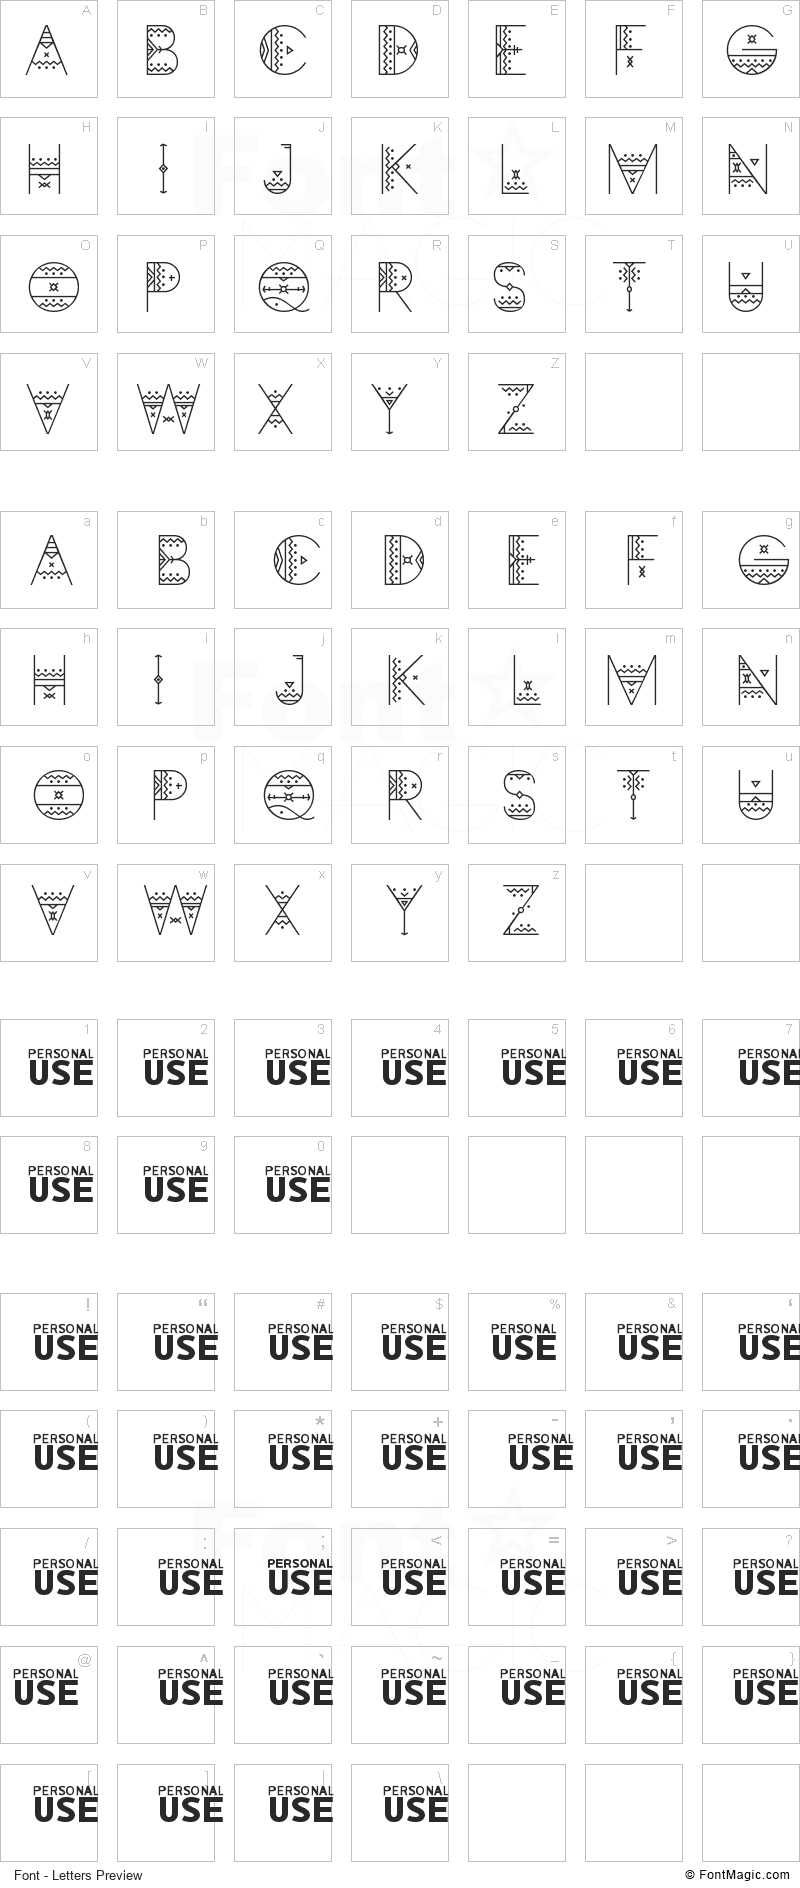 Zilap Africa Font - All Latters Preview Chart